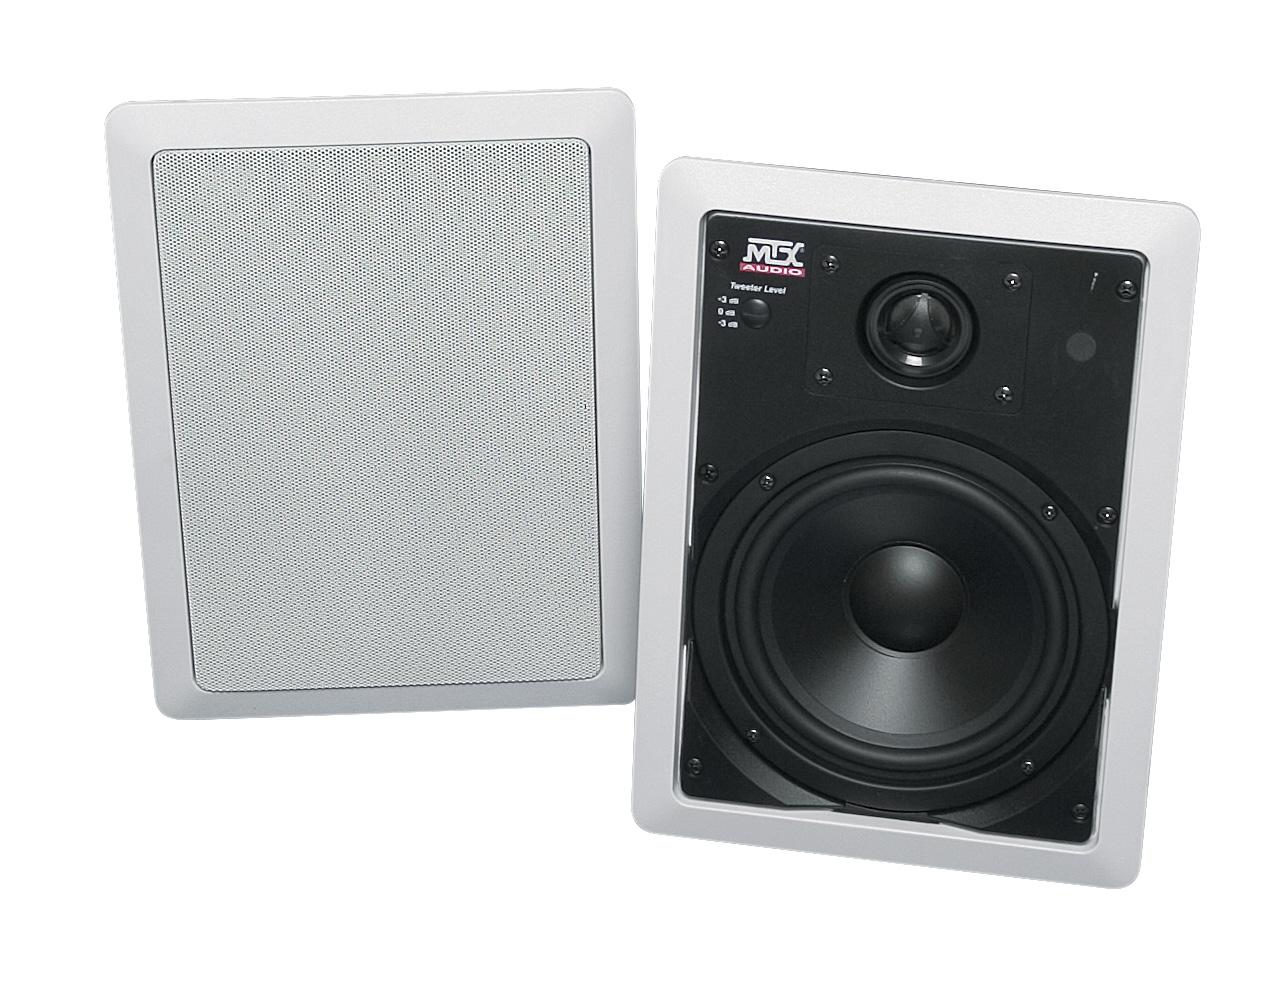 Search Mtx Audio Serious About Sound 8r 625w Loudspeaker Driven By Power Amplifier Model625w Is An Easy To Install Paintable 2 Way Speaker That Can Match Any Decor And Bring Brilliant Room In Your Home